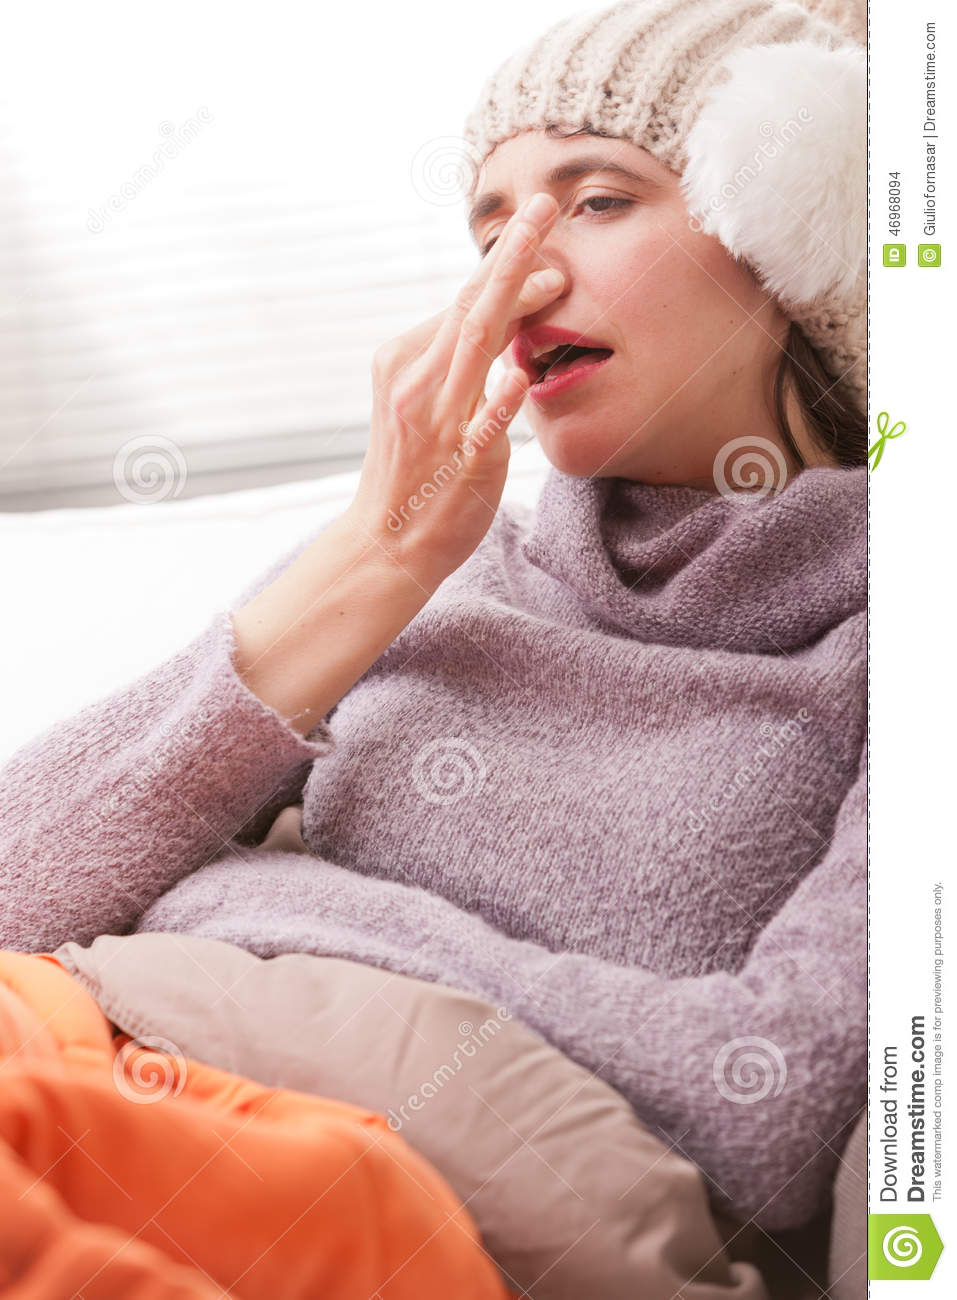 Headache and illness of a young woman